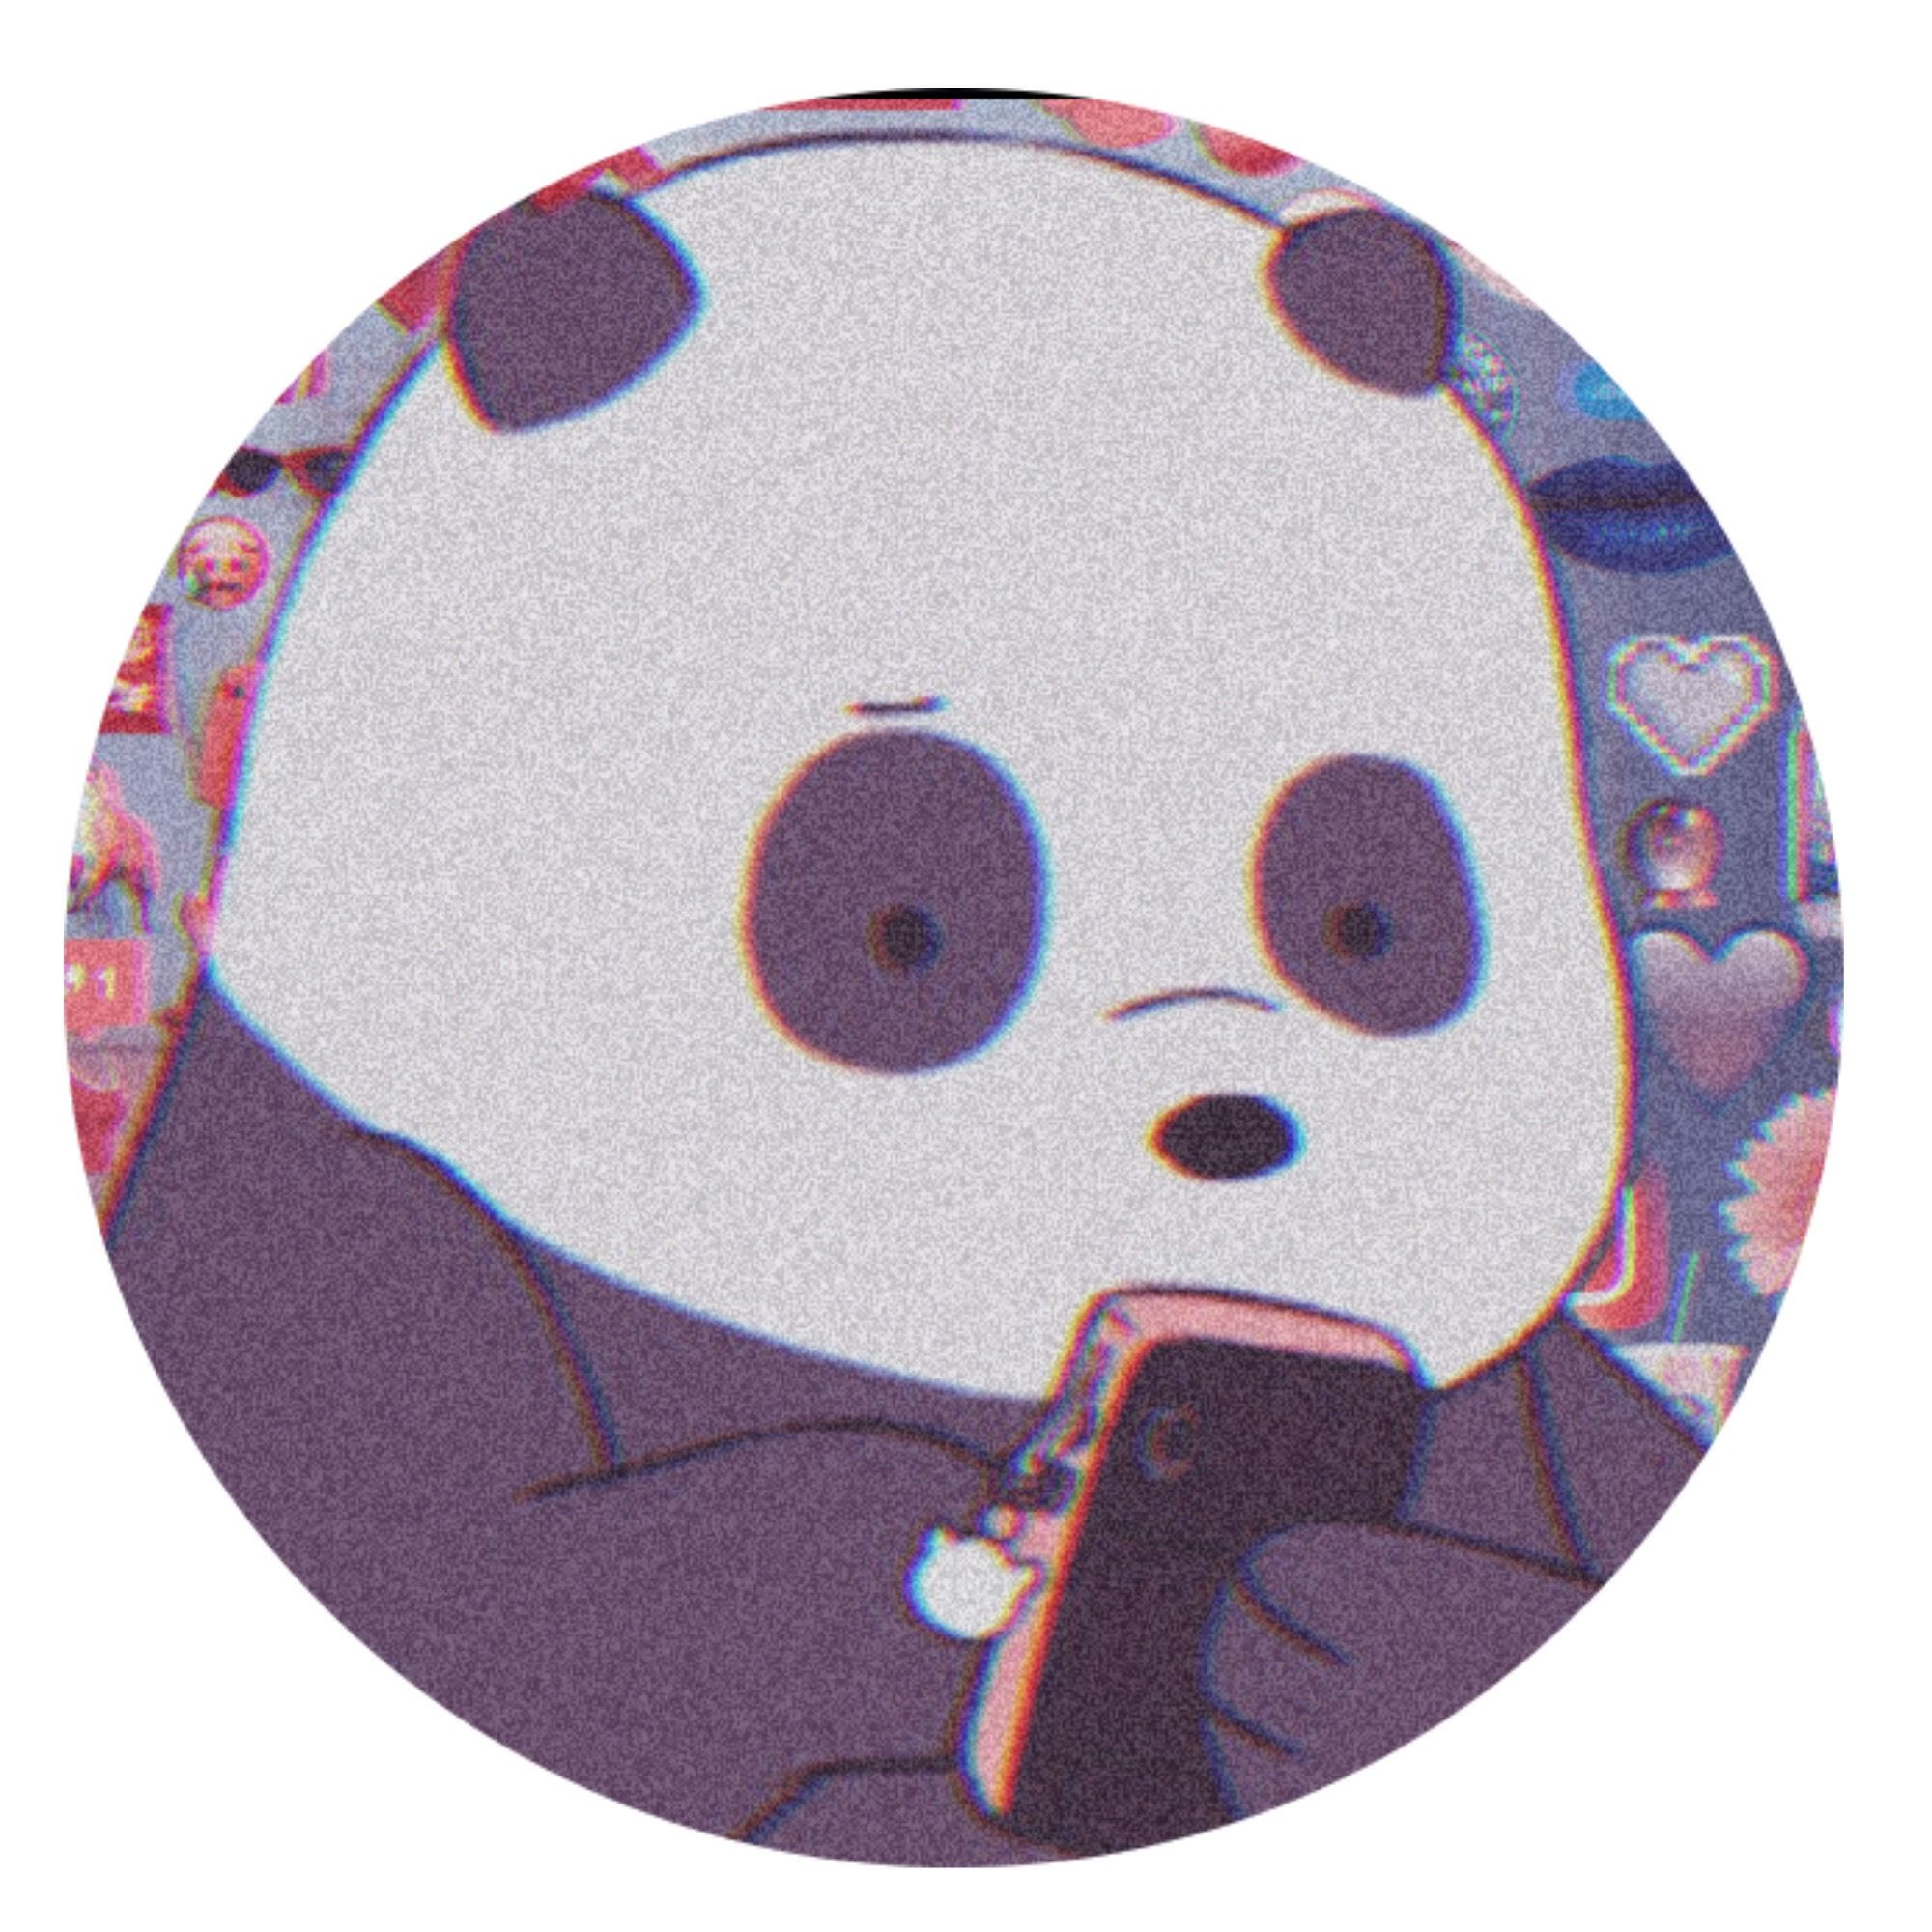 Profile Picture Webarebears Pfp Instagram Aesthetic Aestheticcircle Aestheticprofile Profilepic Instagram Cartoon Profile Picture Instagram Profile Pic